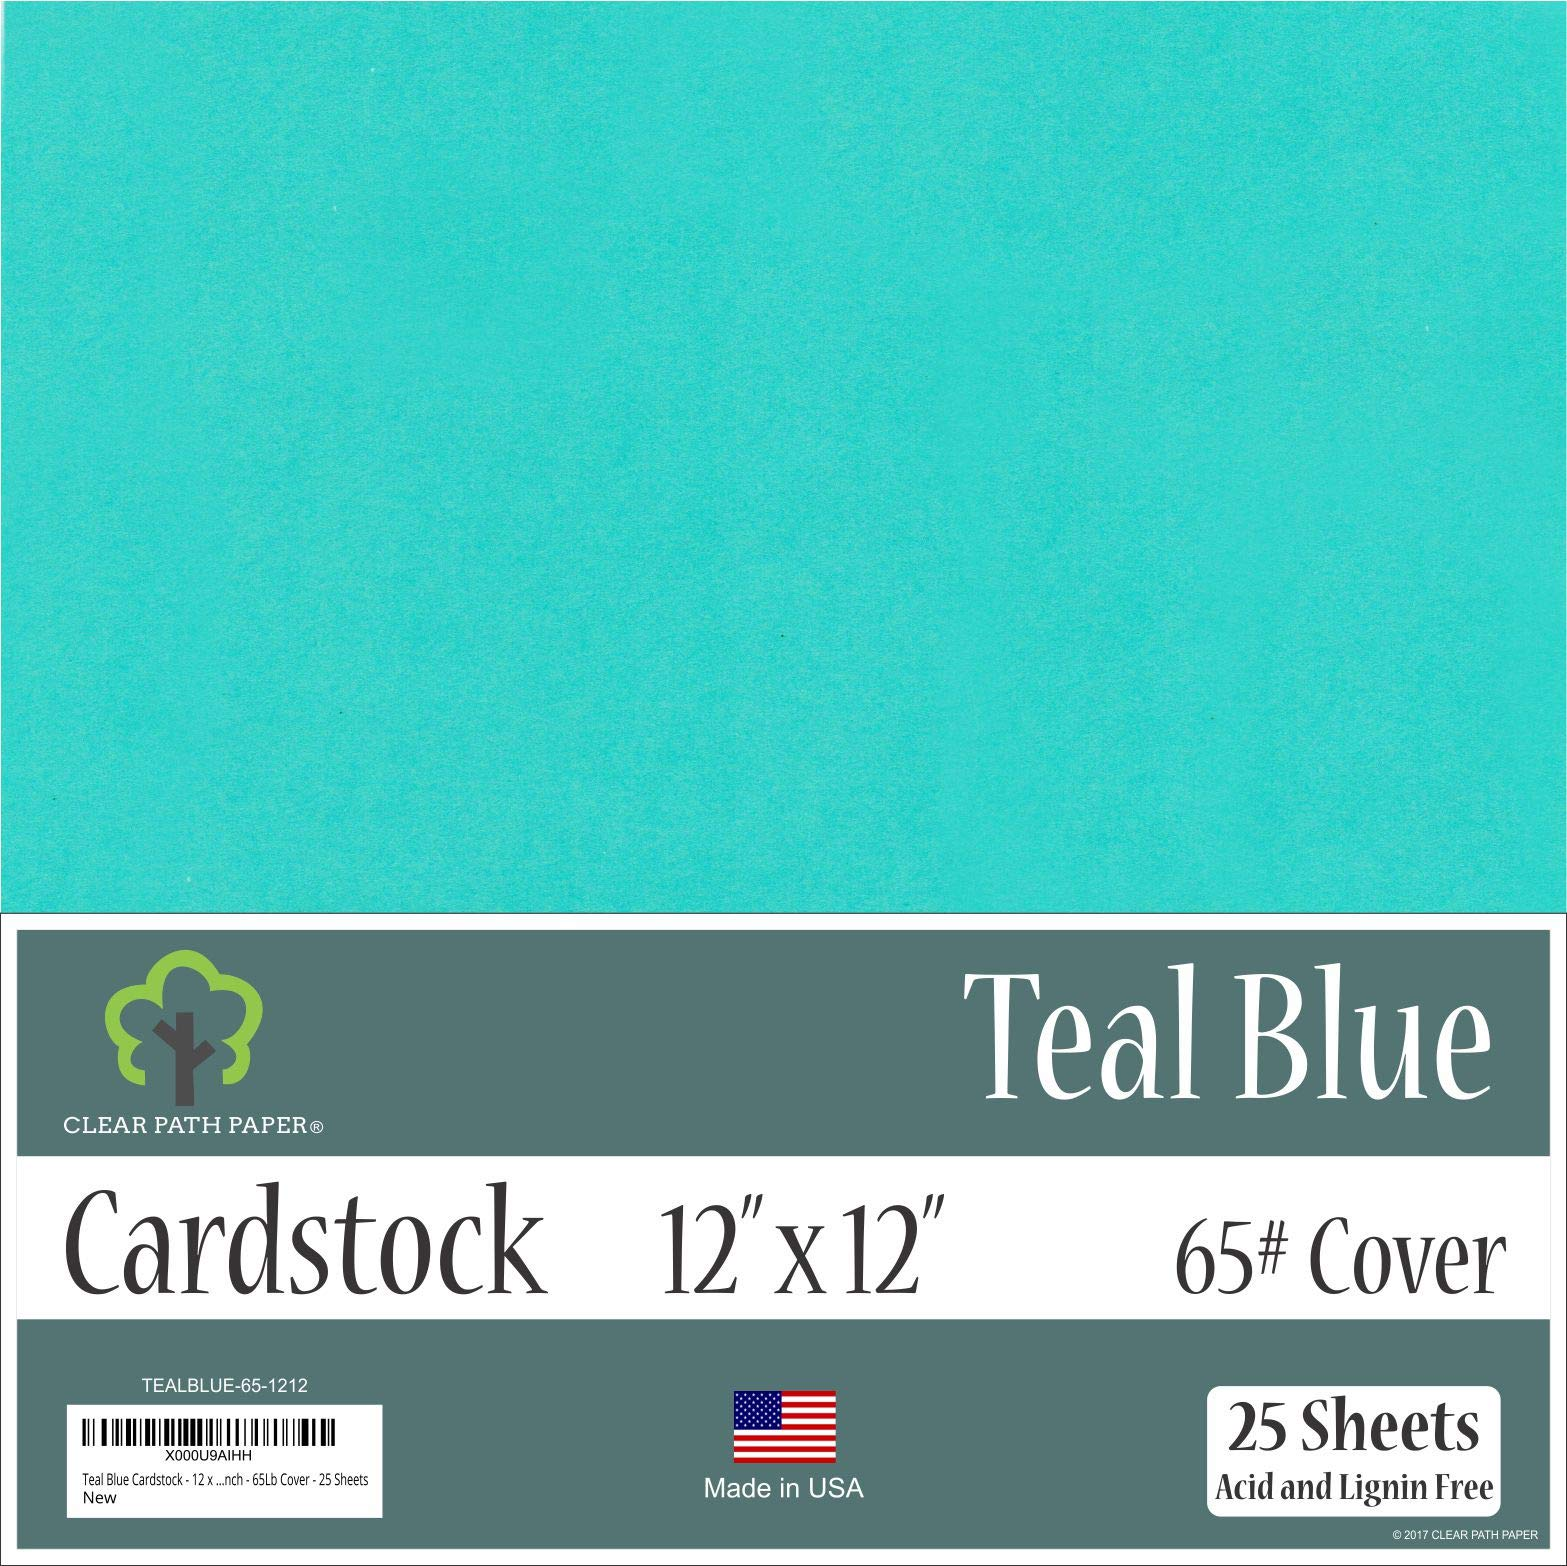 Teal Blue Cardstock - 12 x 12 inch - 65Lb Cover - 25 Sheets